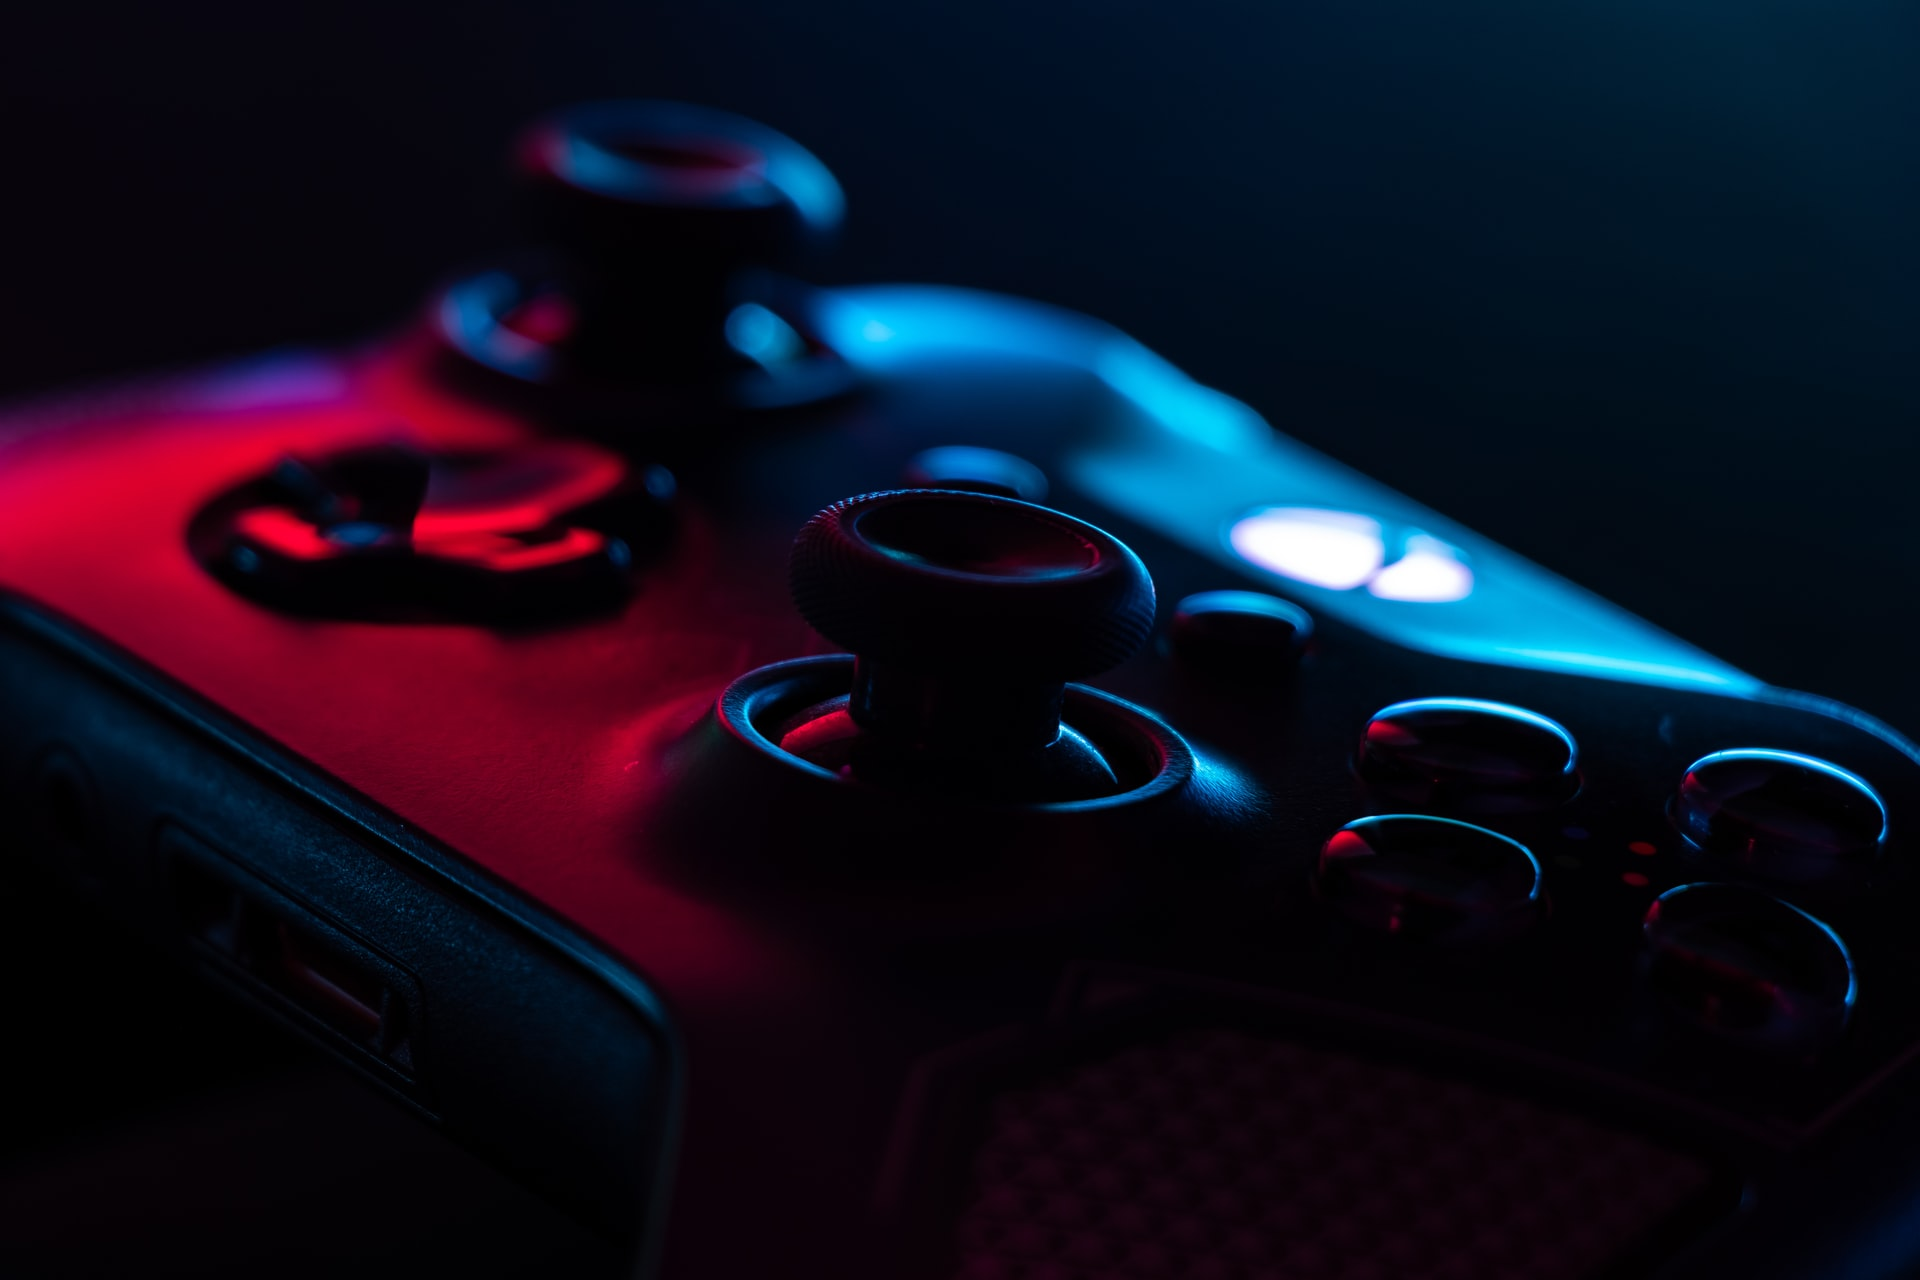 Video Games' Breakout Growth Likely to Weather Chinese Regulation and Production Headwinds